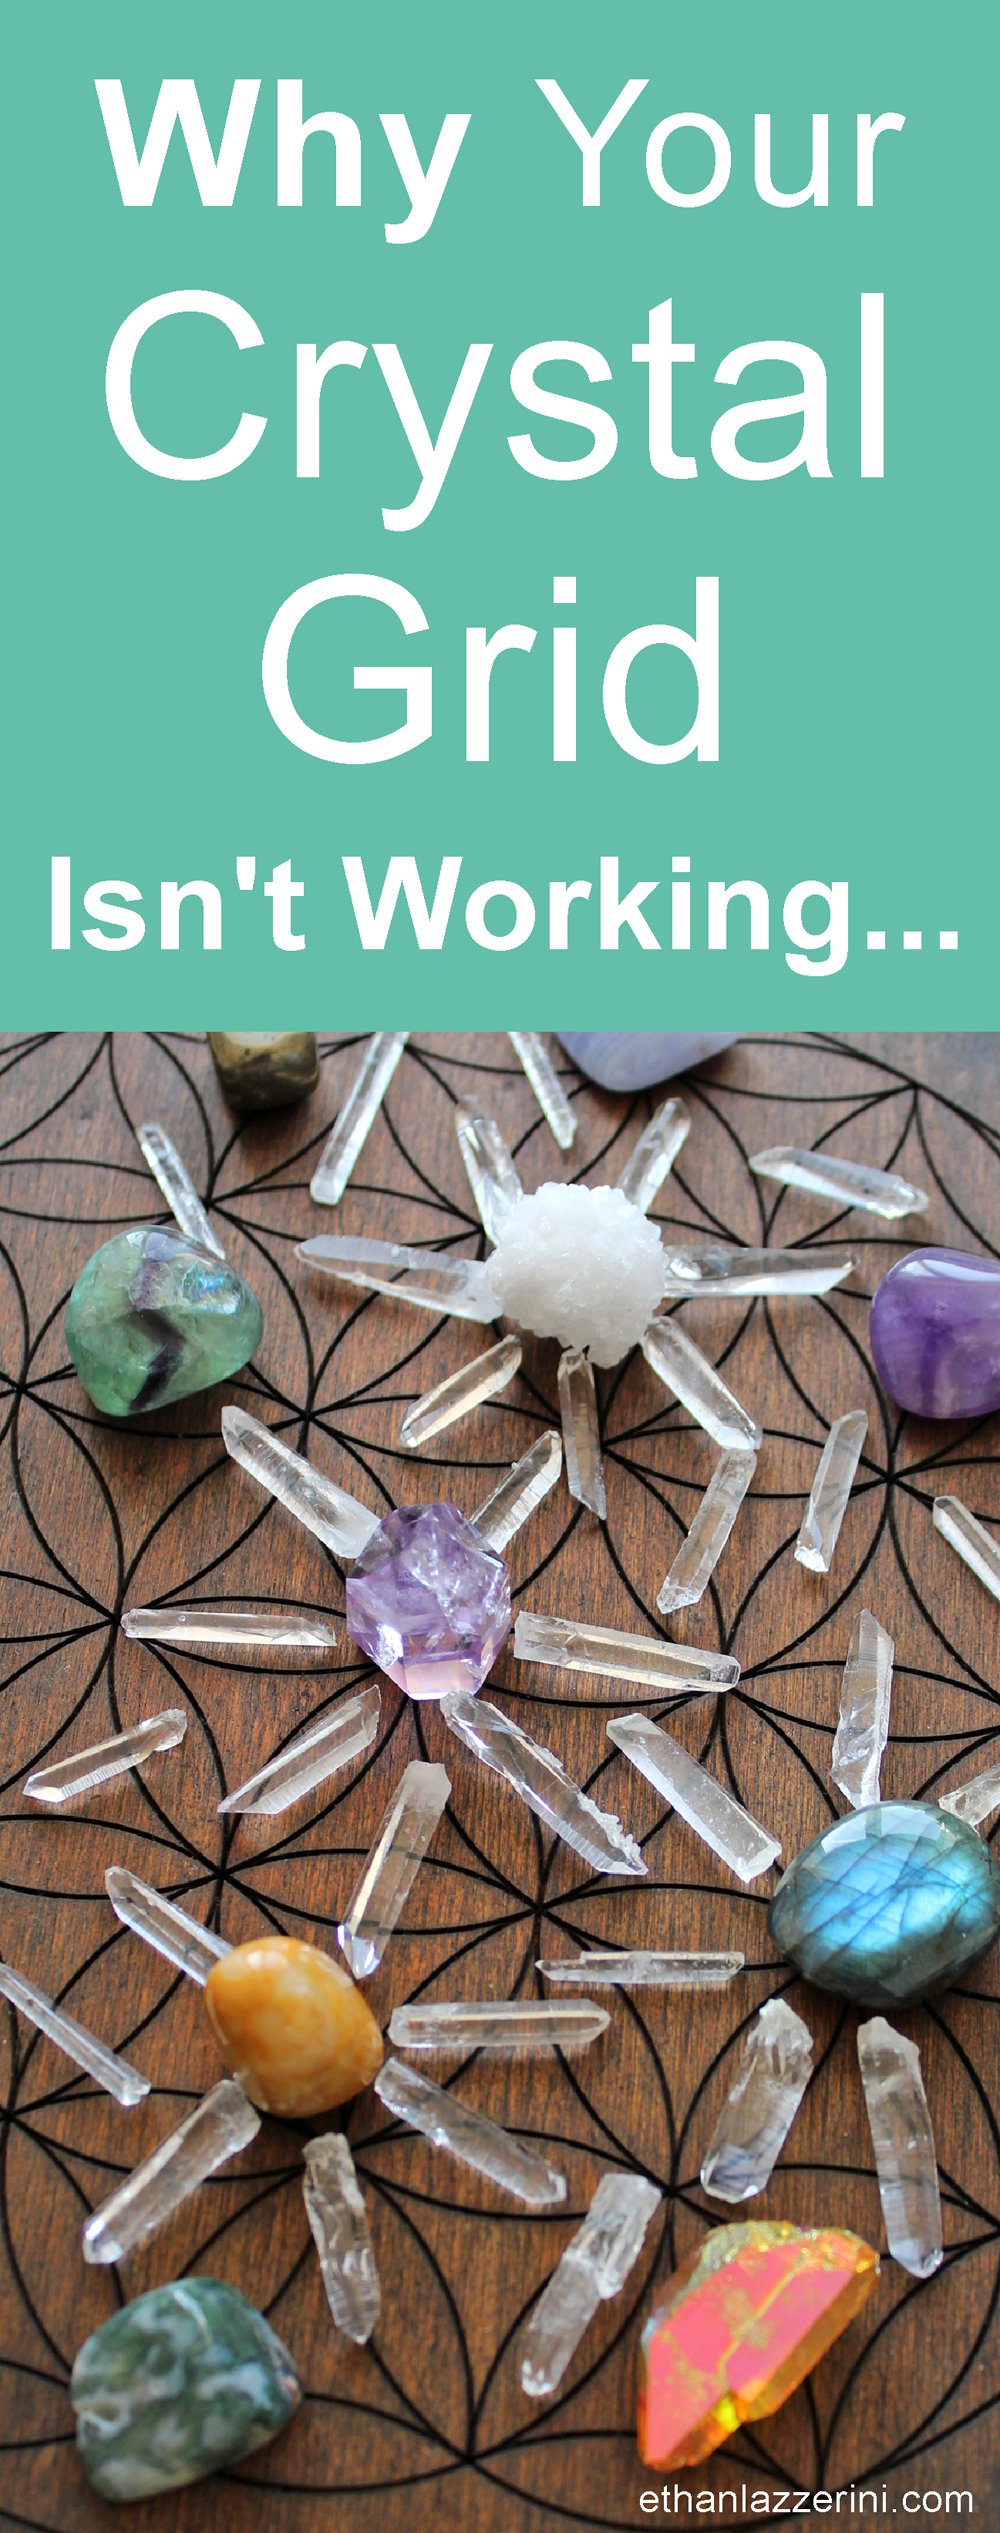 Why your crystal grid isn't working